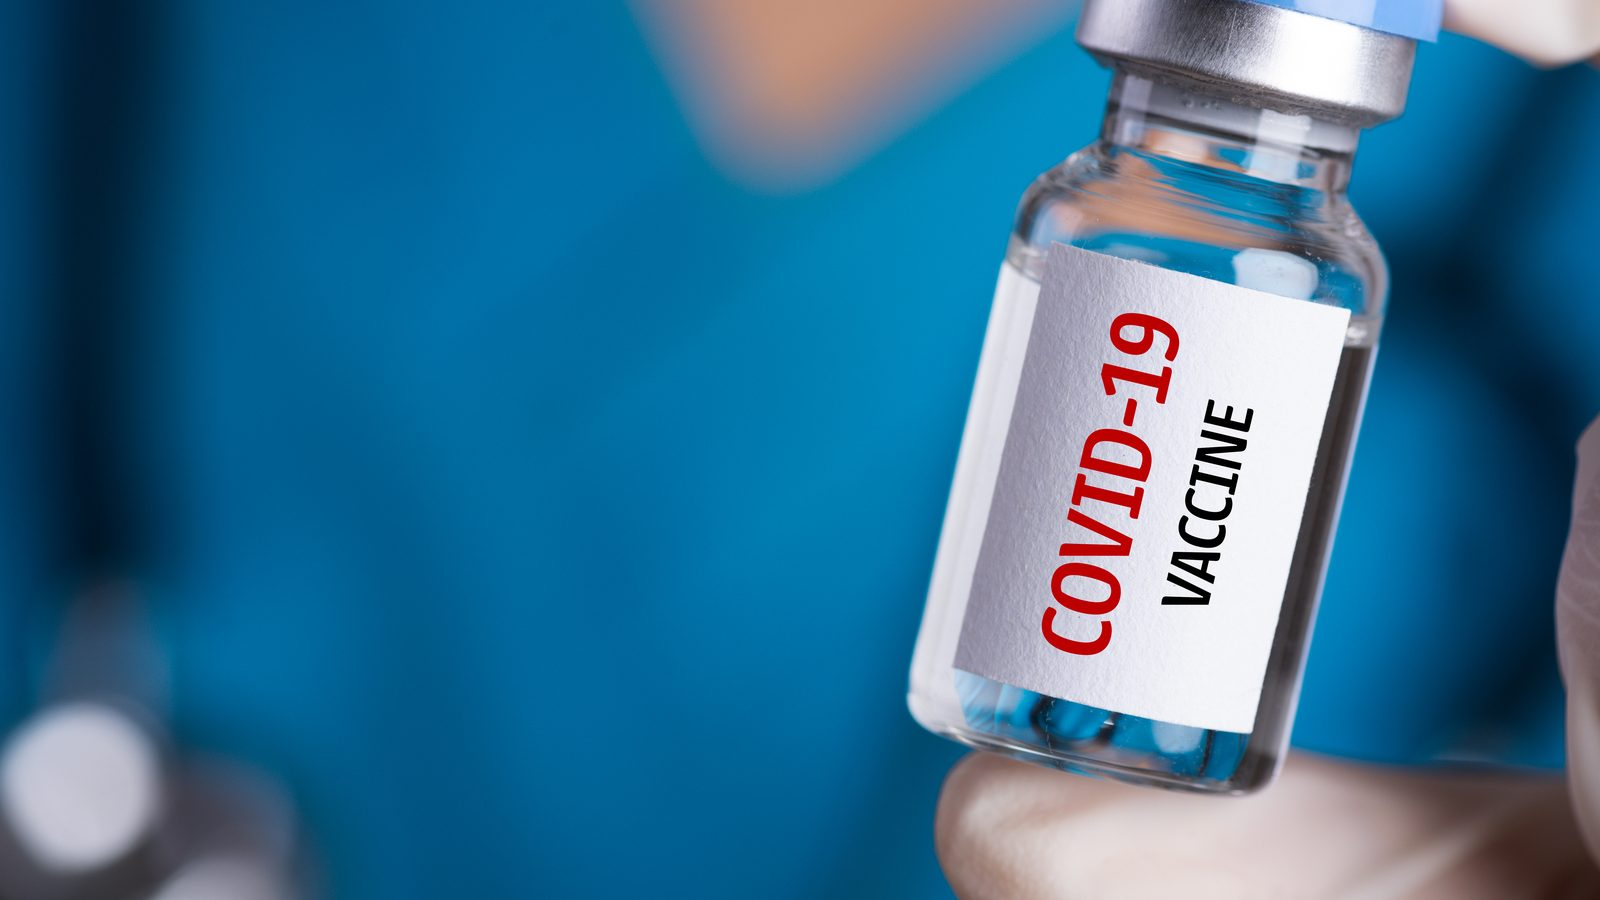 Changing the minds of anti-vaxxers is the next arduous task in the fight against COVID